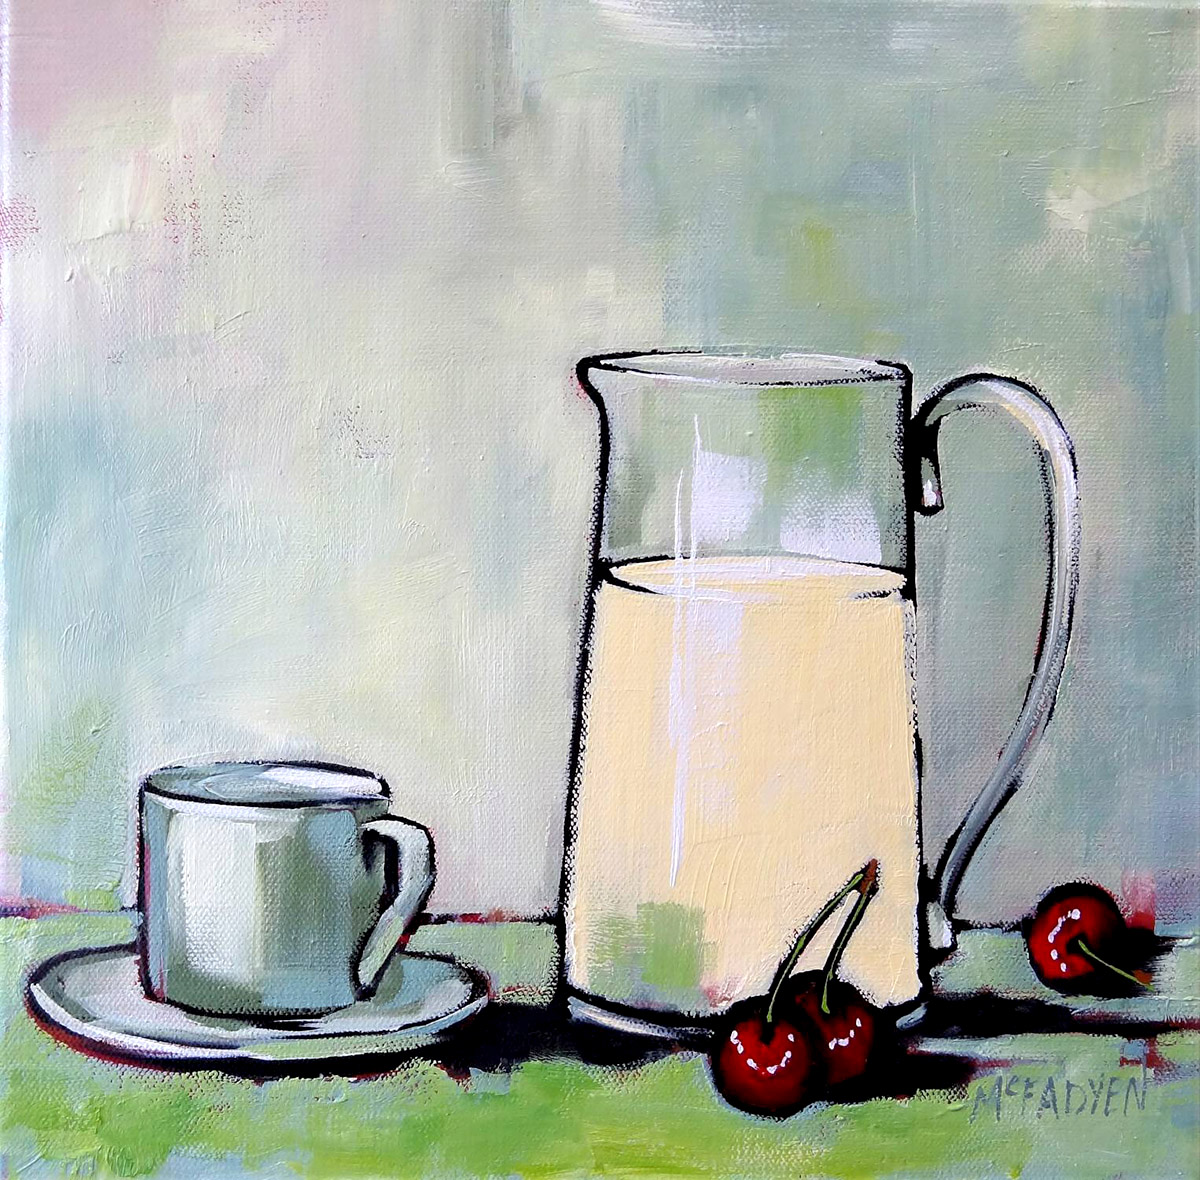 Lex McFadyen - Cherries for Breakfast, Oils